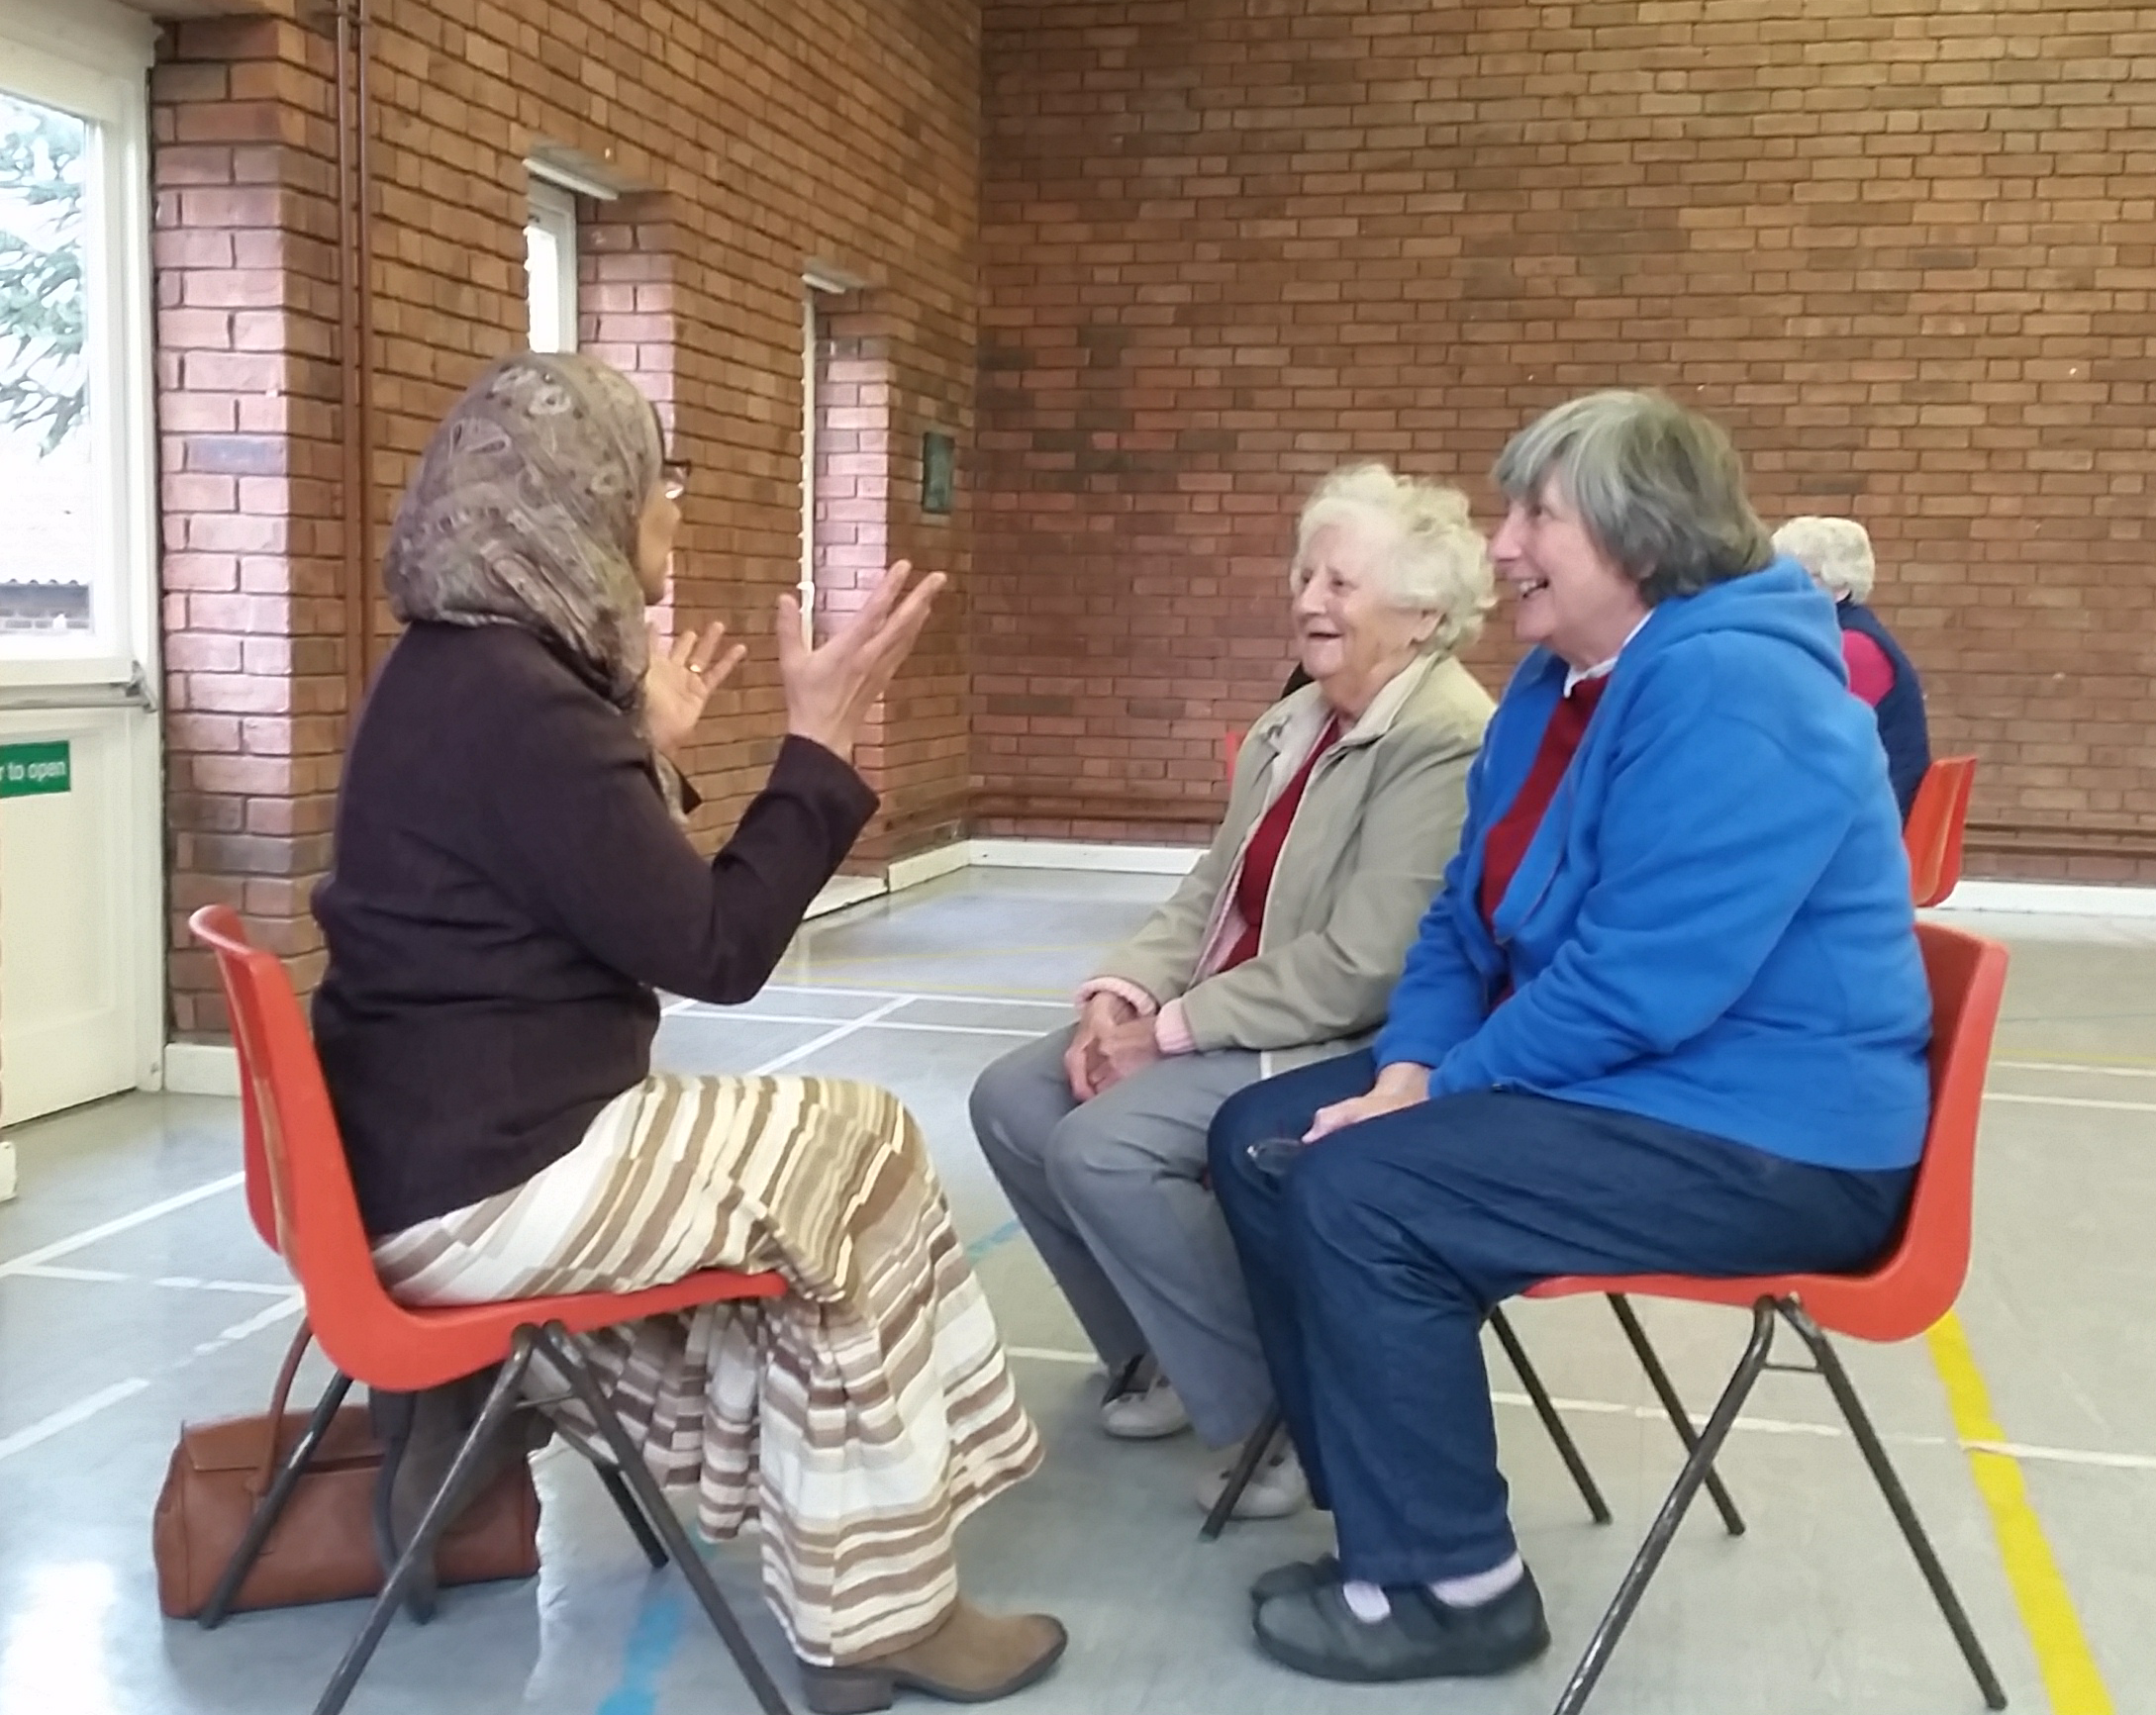 Weaving Trust with Middle Eastern Cultural Group